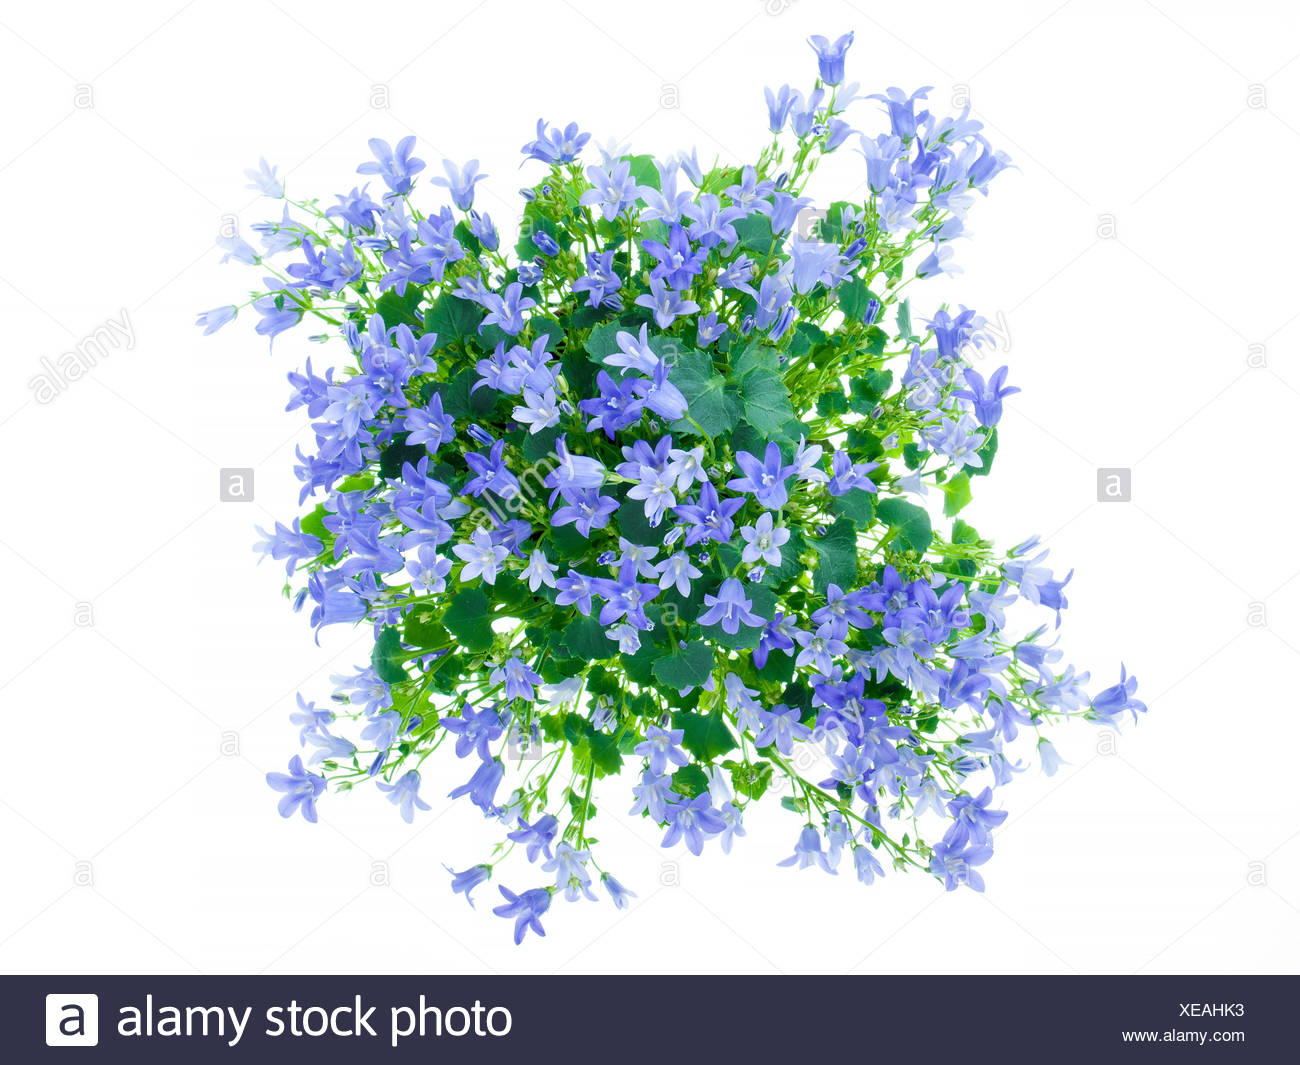 Blue Flowers Stock Photos Blue Flowers Stock Images Alamy